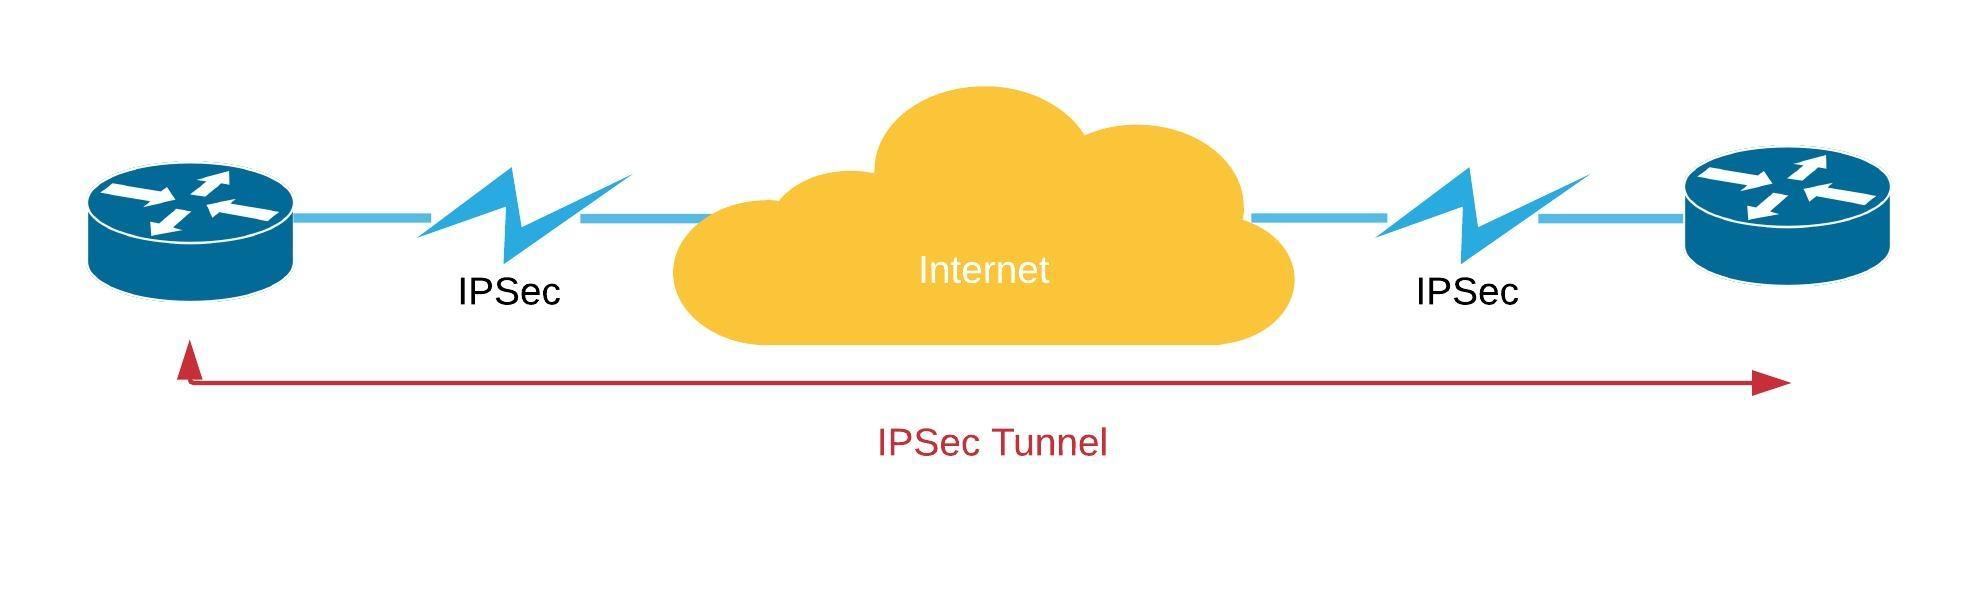 SD WAN over MPLS IPSec